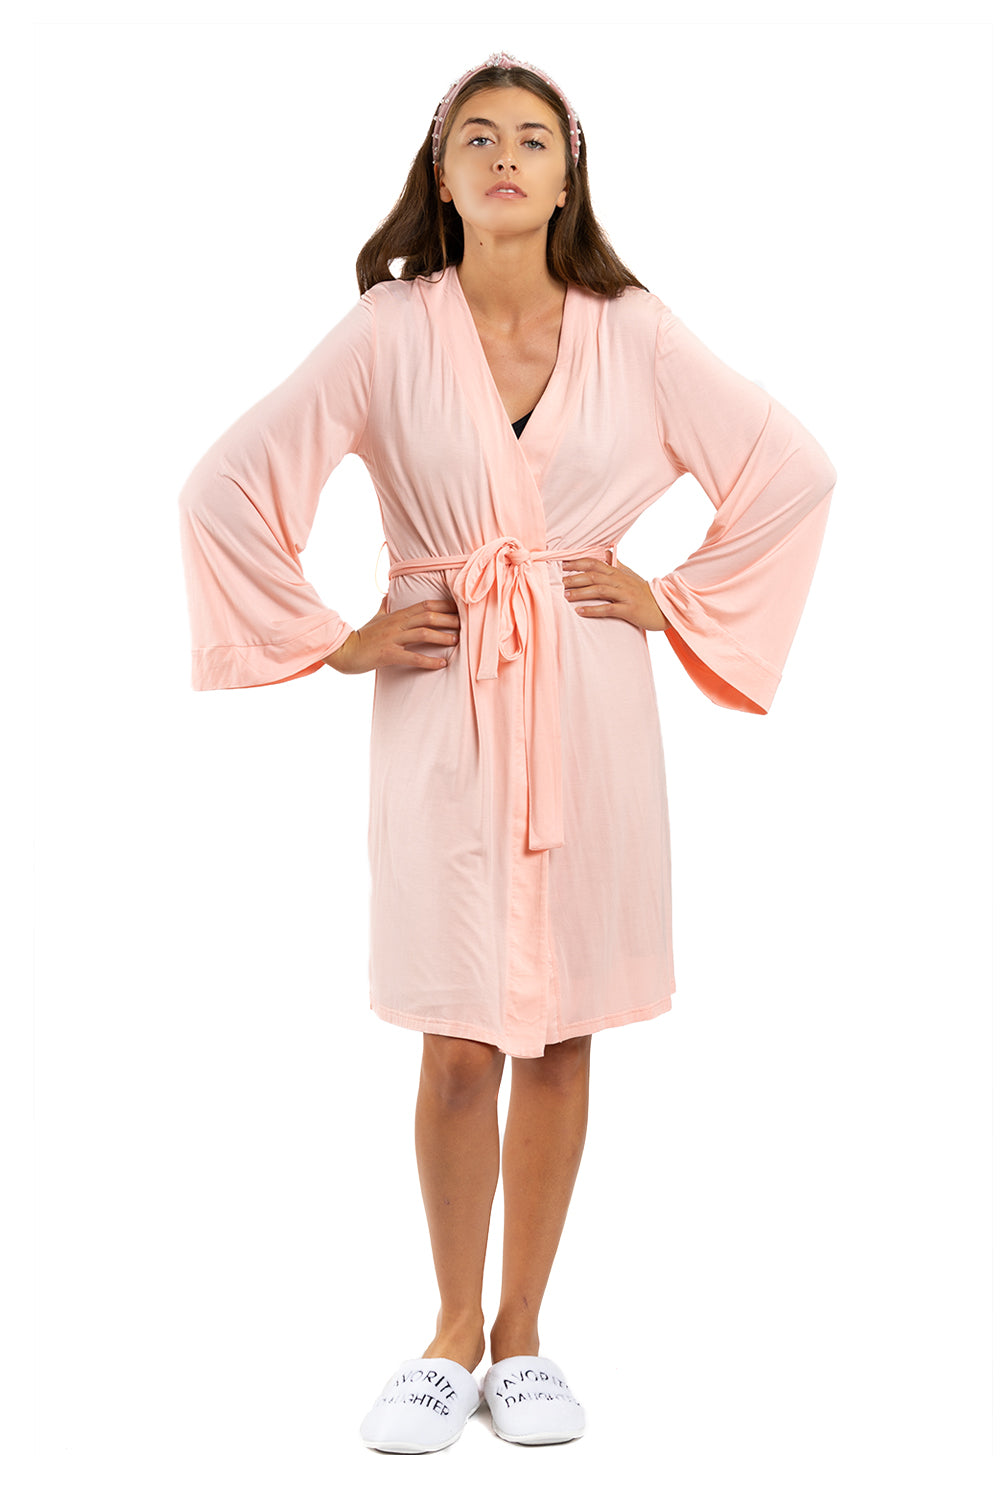 LIGHTWEIGHT ROBE - Blank